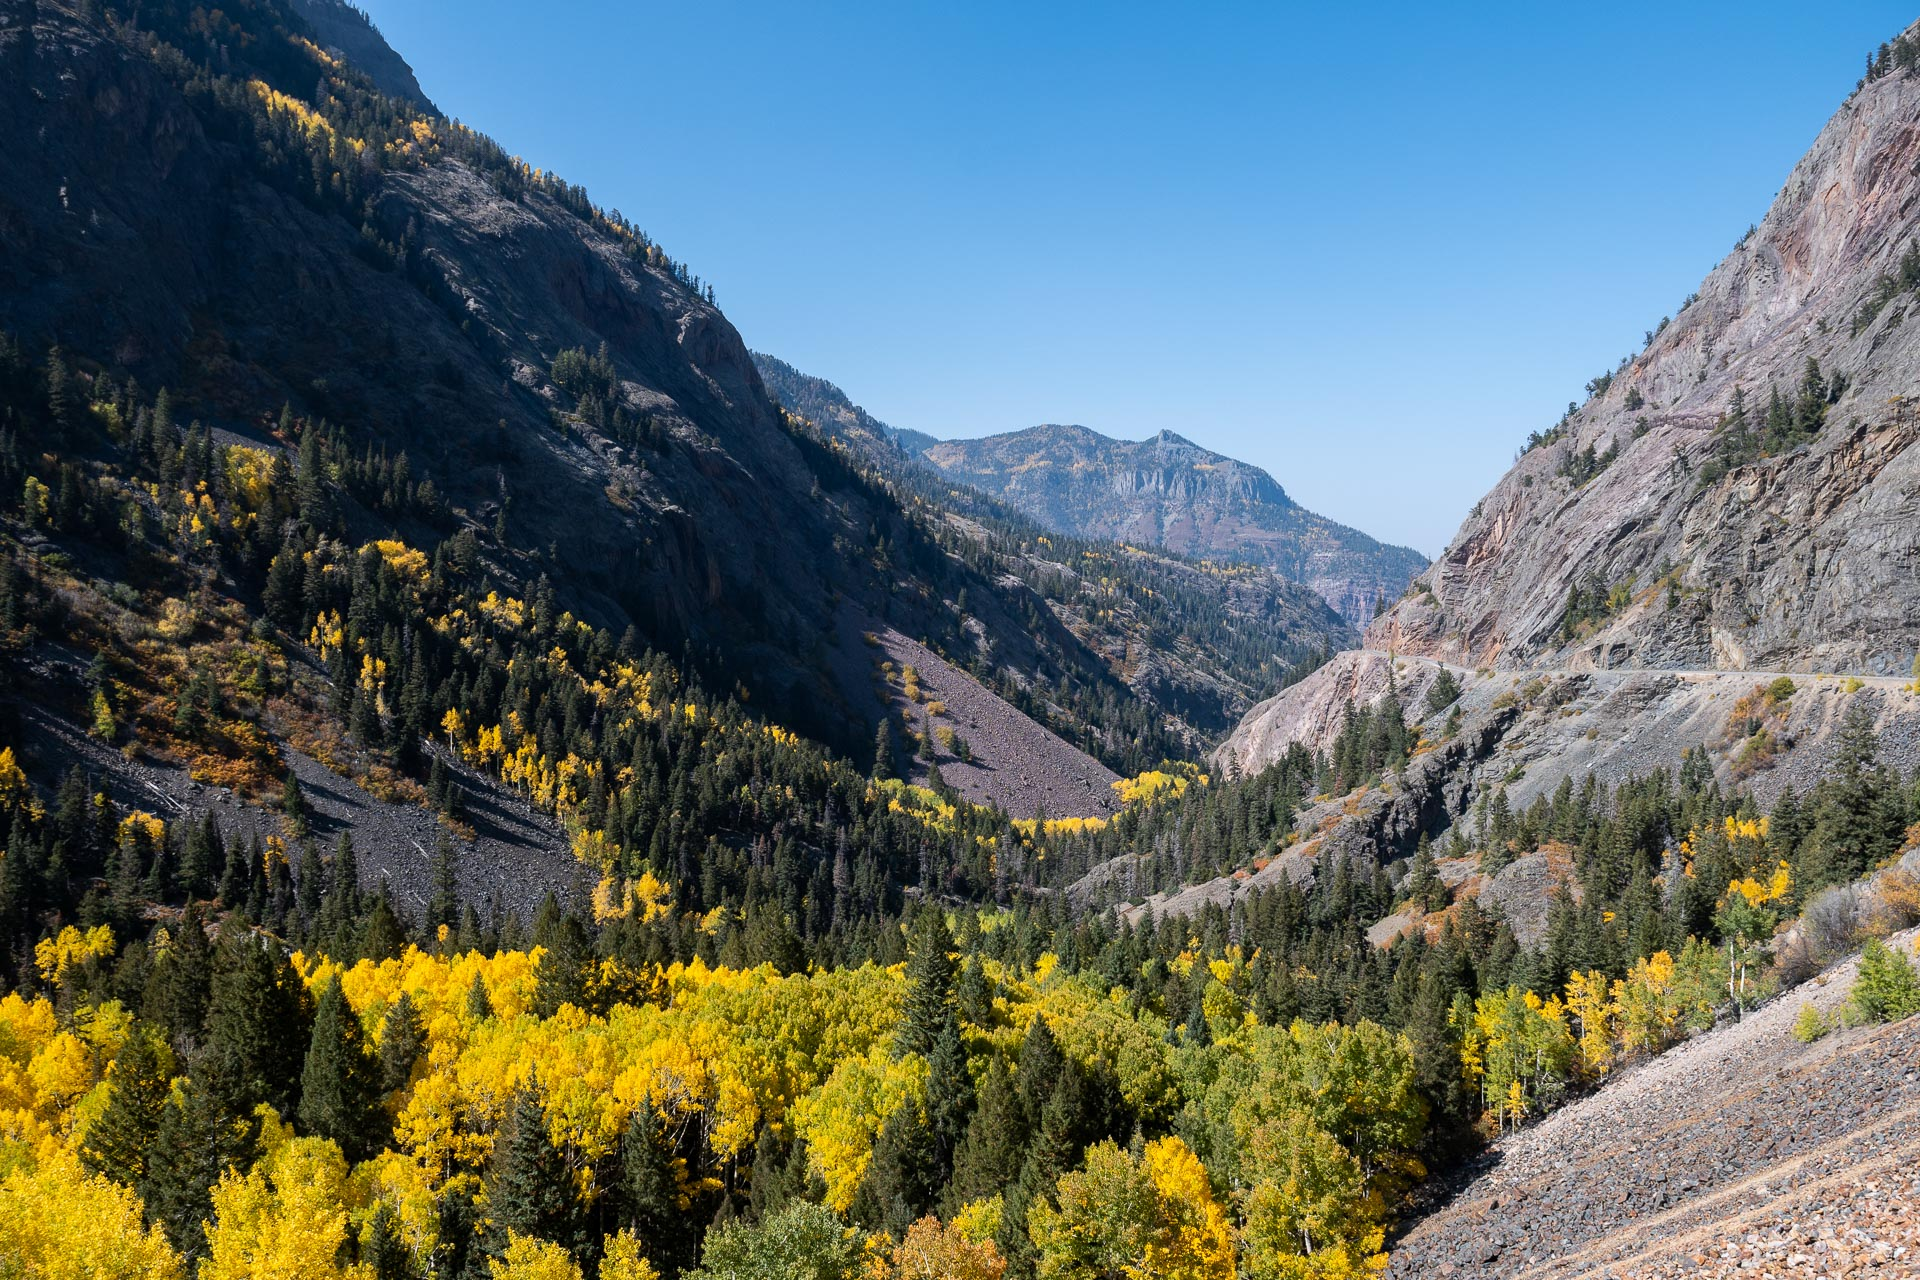 Million Dollar Highway approaching Ouray